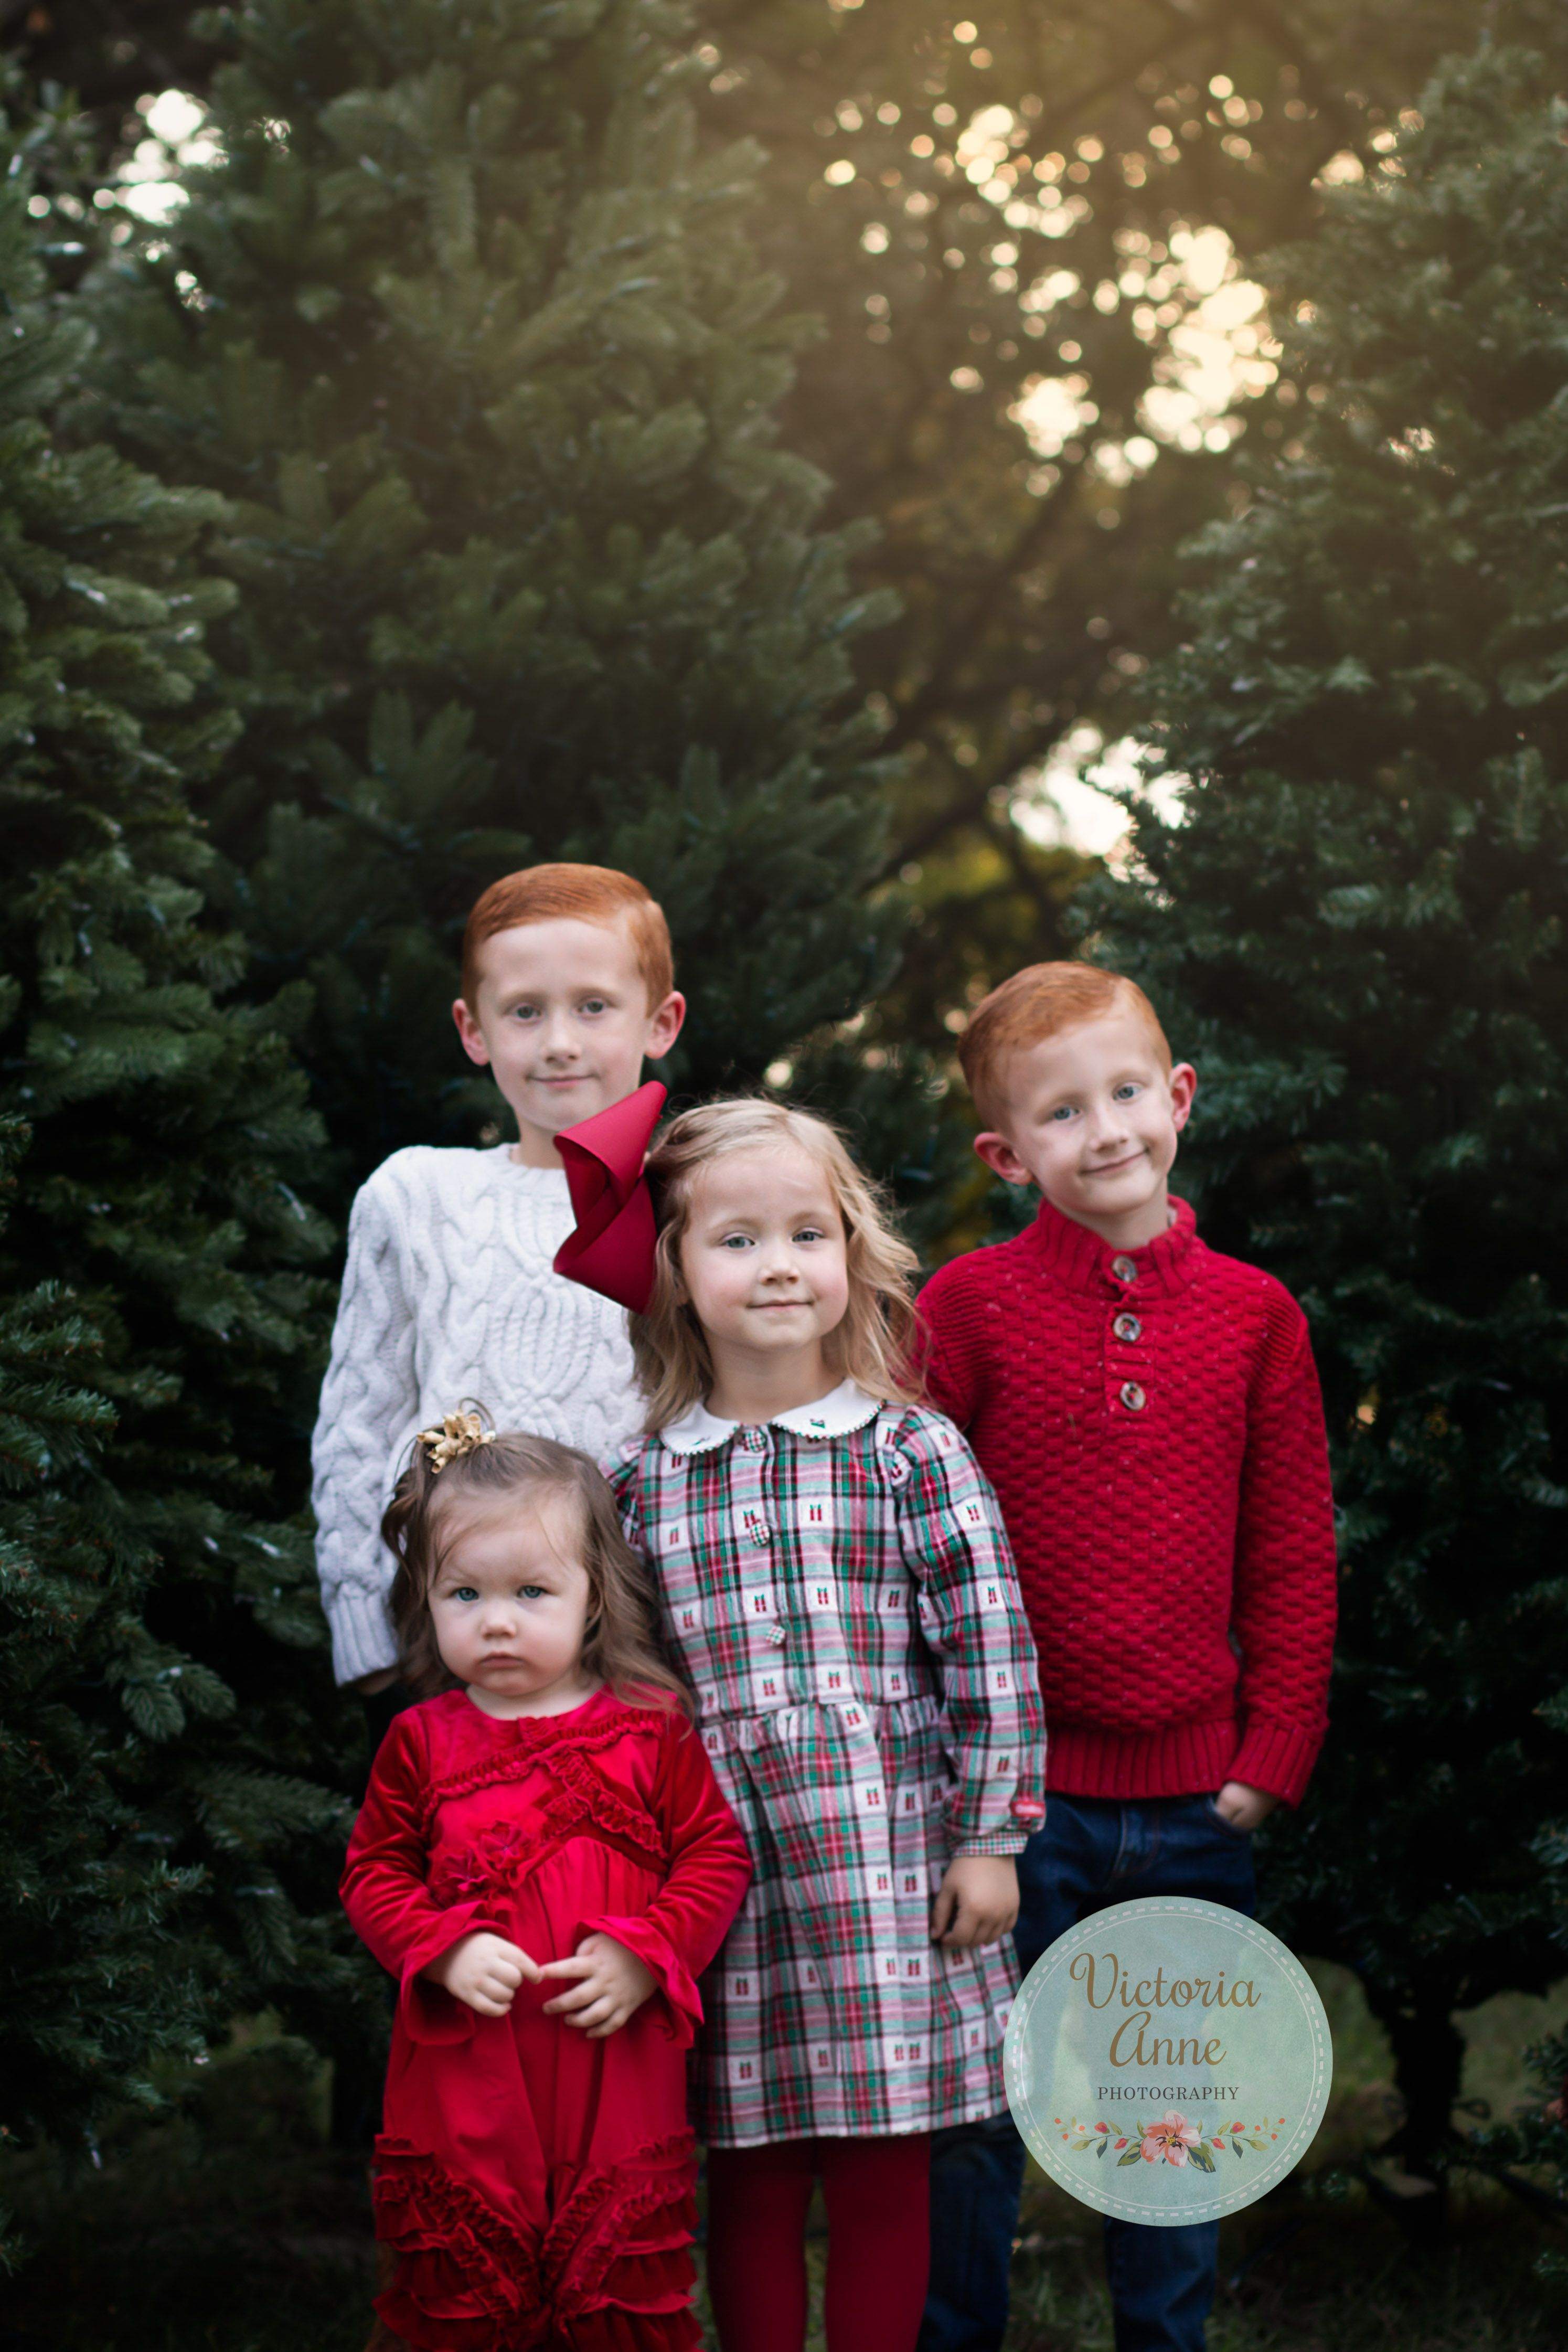 Christmas Card Pictures Christmas Tree Farm Mini Session With Four Sweet Kiddo Christmas Tree Farm Mini Session Tree Farm Mini Session Christmas Card Pictures